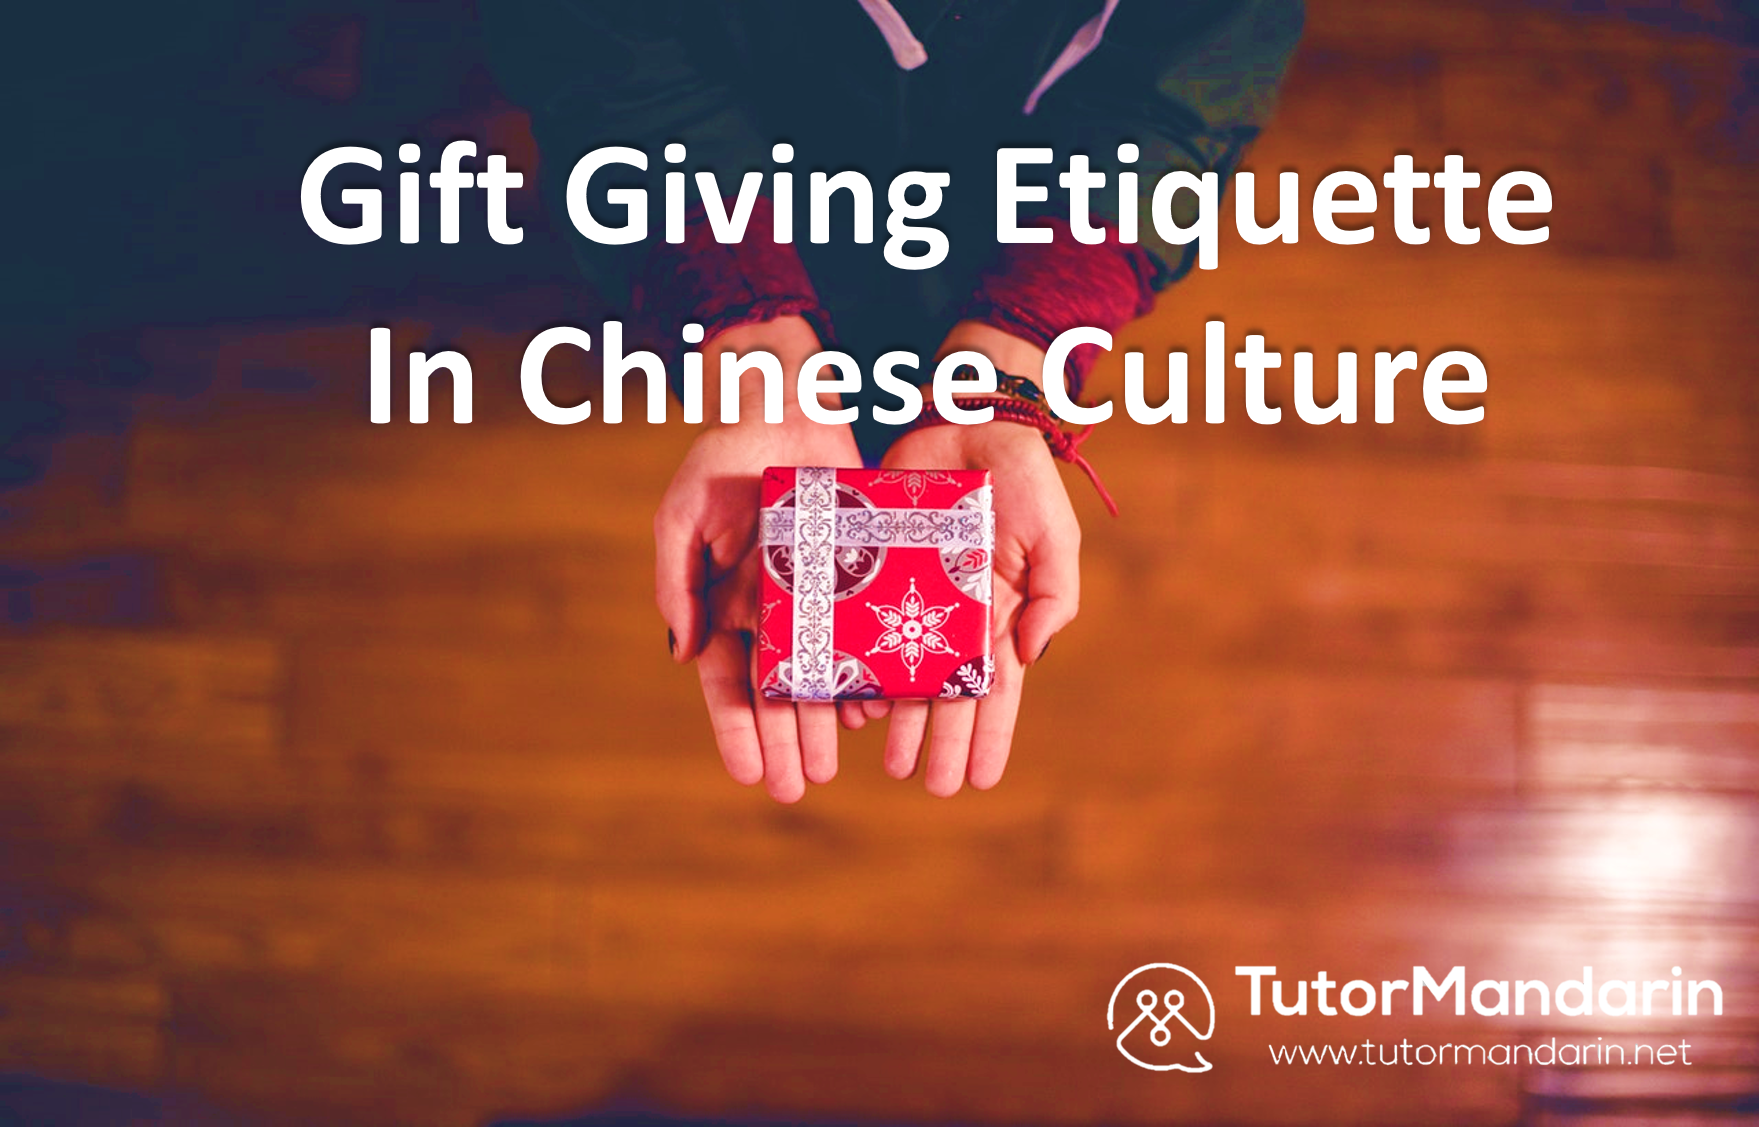 How to Choose Chinese Gifts - Learn about Chinese gift